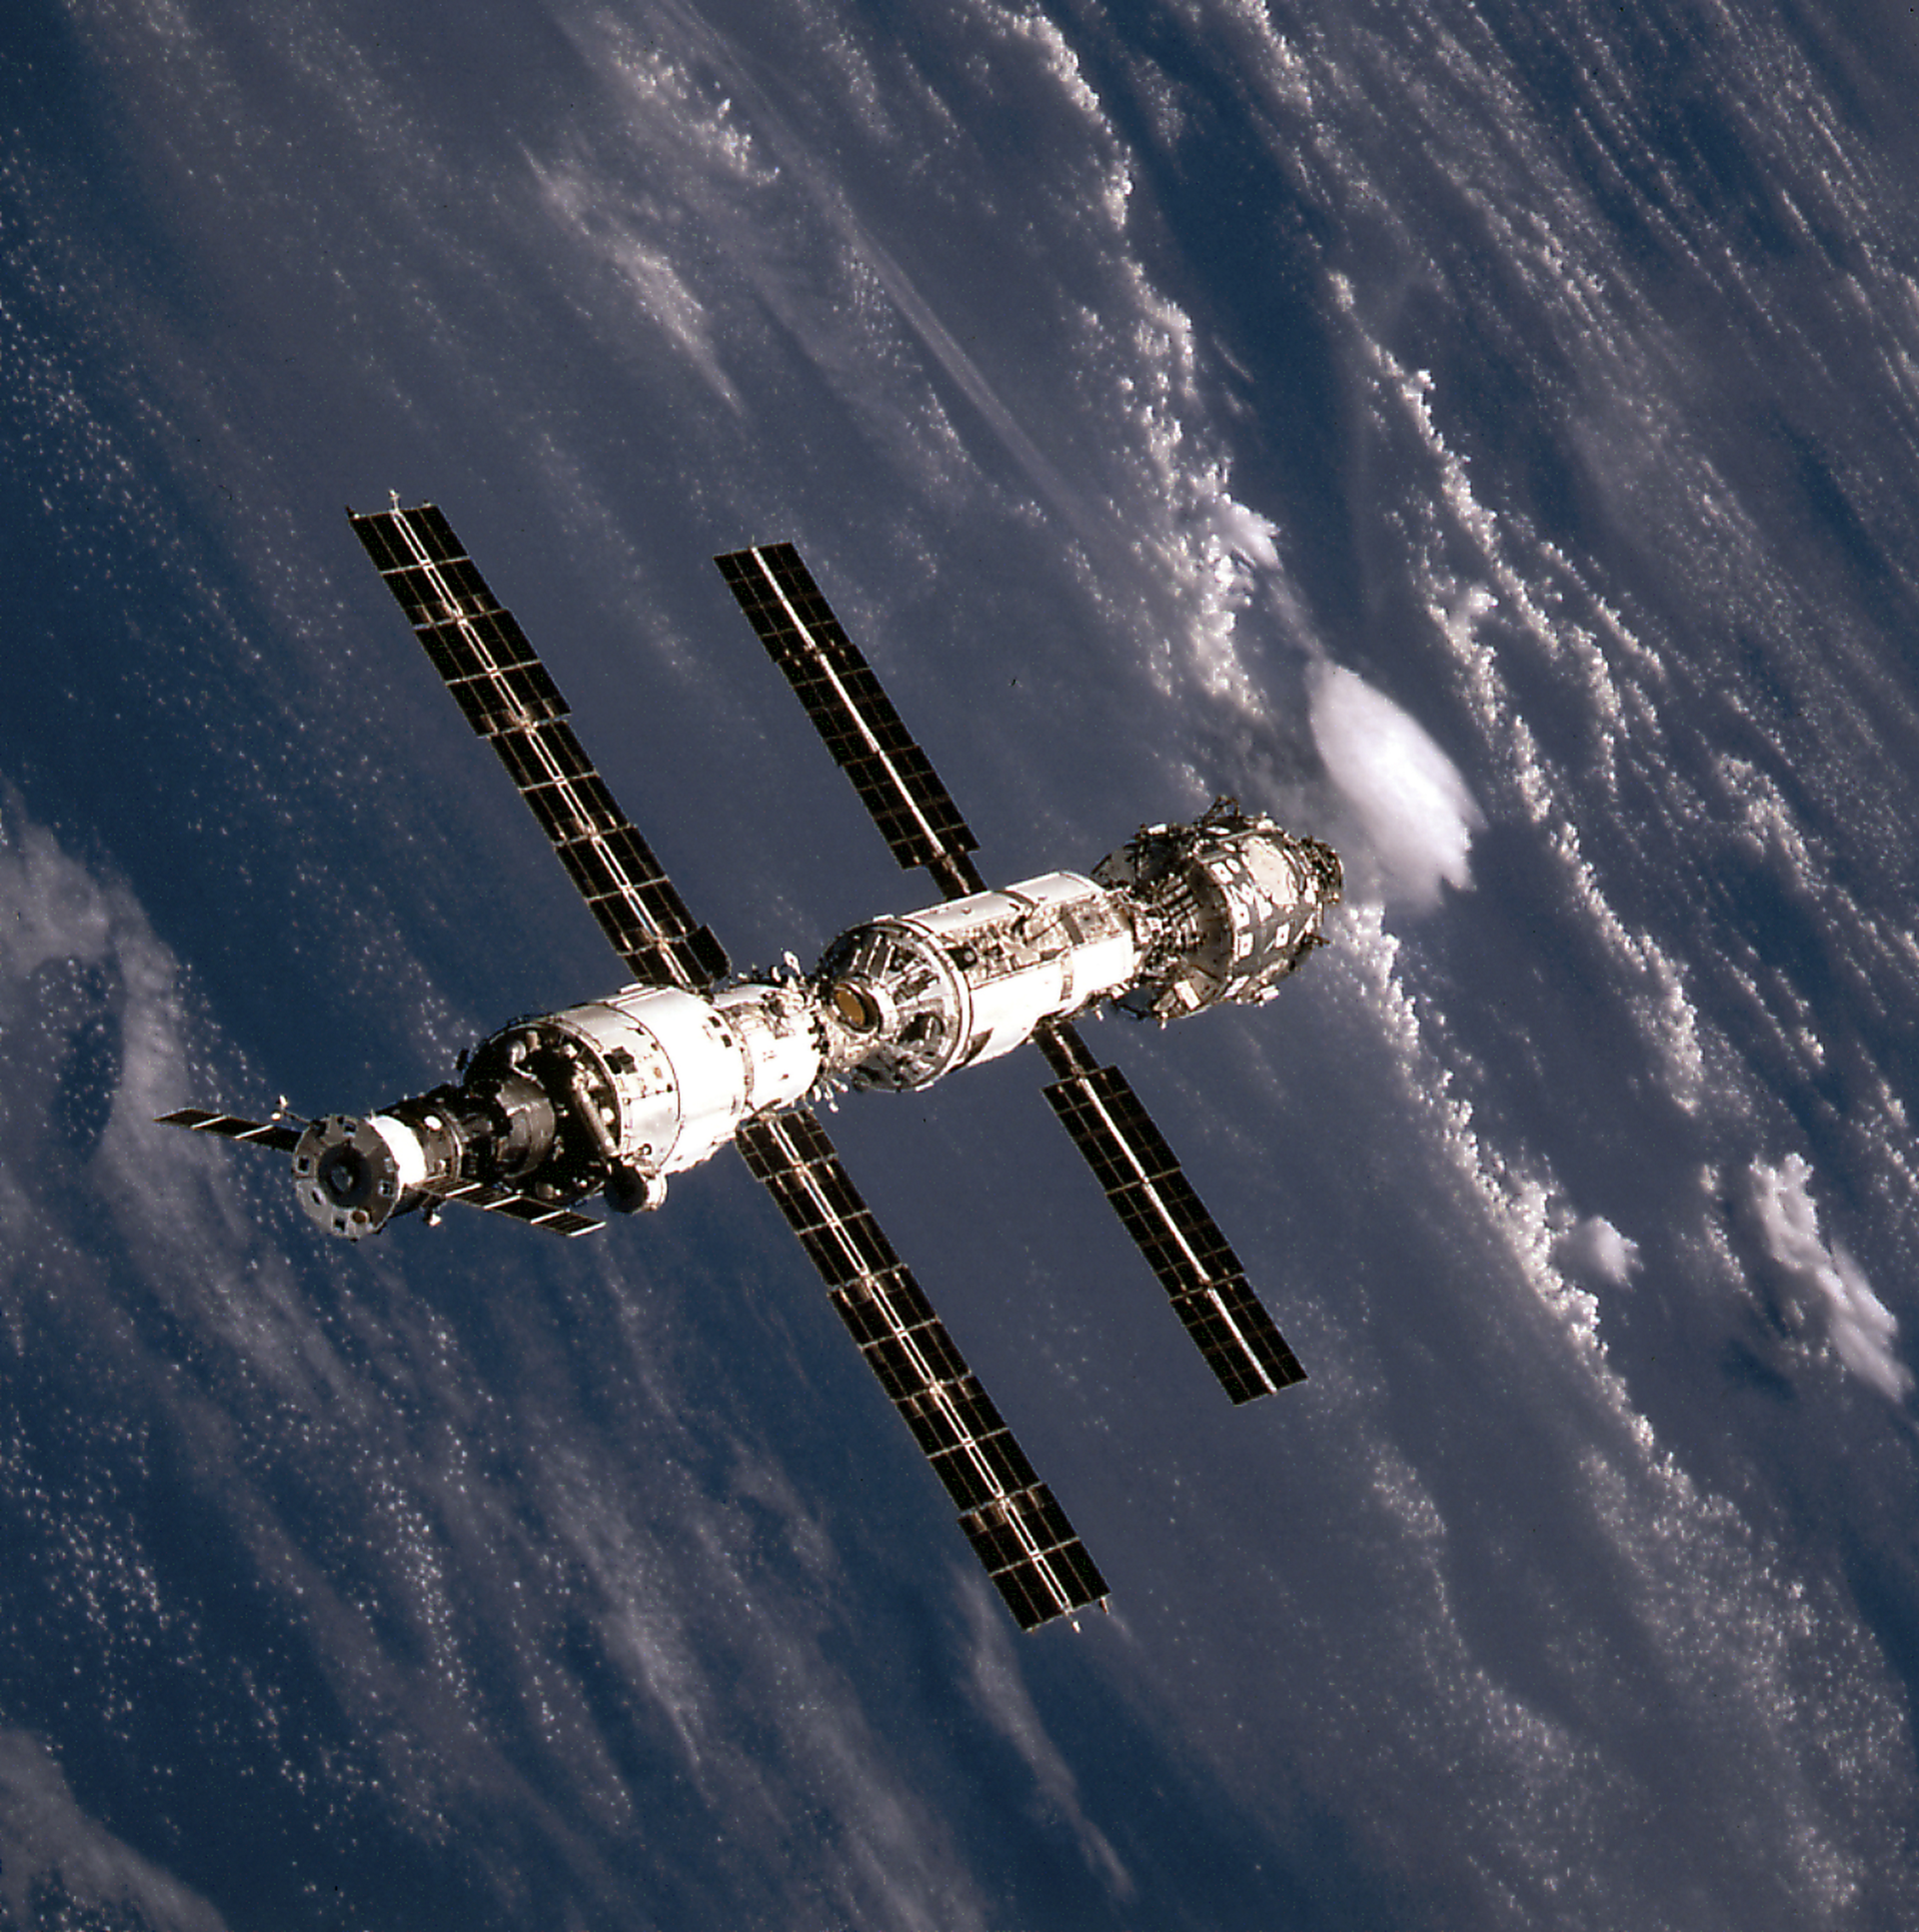 This image of the International Space Station (ISS) was taken when Space Shuttle Atlantis (STS-106 mission) approached the ISS for docking. At the top is the Russian Progress supply ship that is linked with the Russian-built Service Module (Zvezda). The Zvezda is connected with the Russian-built Functional Cargo Block (FGB or Zarya). The U.S.-built Node 1 or Unity module is seen at the bottom. – Credit: NASA (STS 106 was in Sept. 2000)